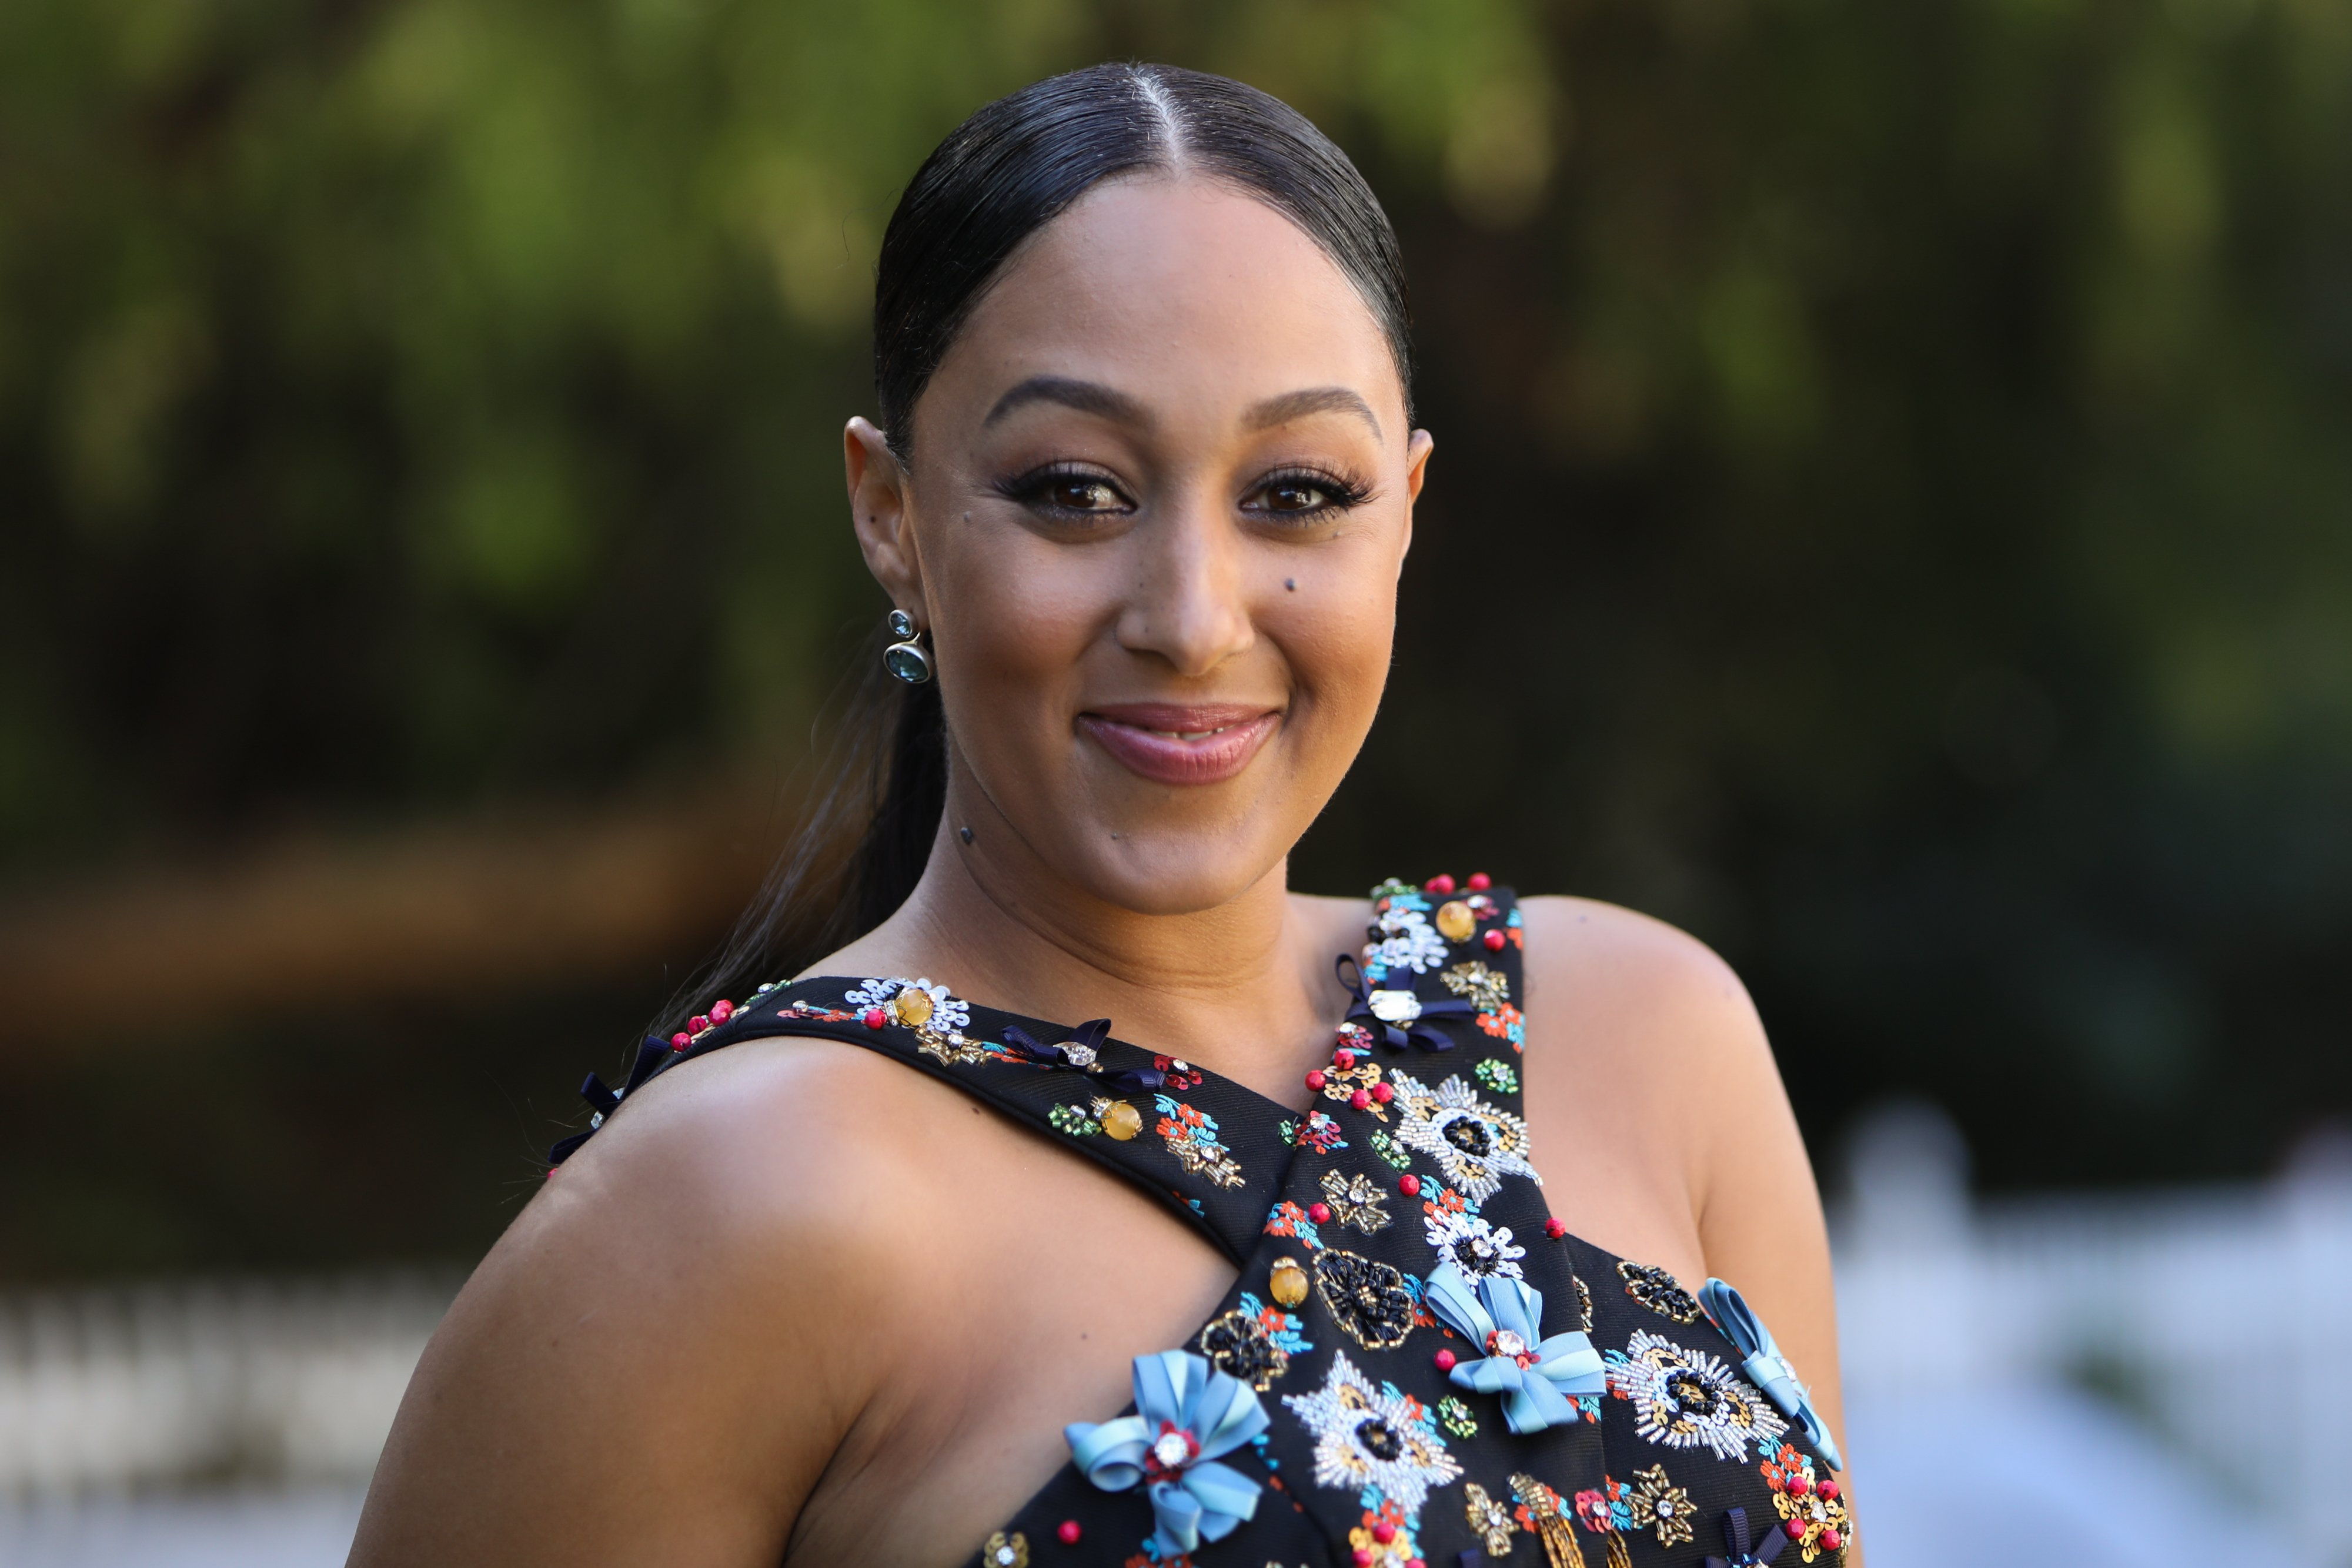 Tamera Mowry-Housley pictured at Universal Studios Hollywood on November 07, 2019 in Universal City, California. | Source: Getty Images